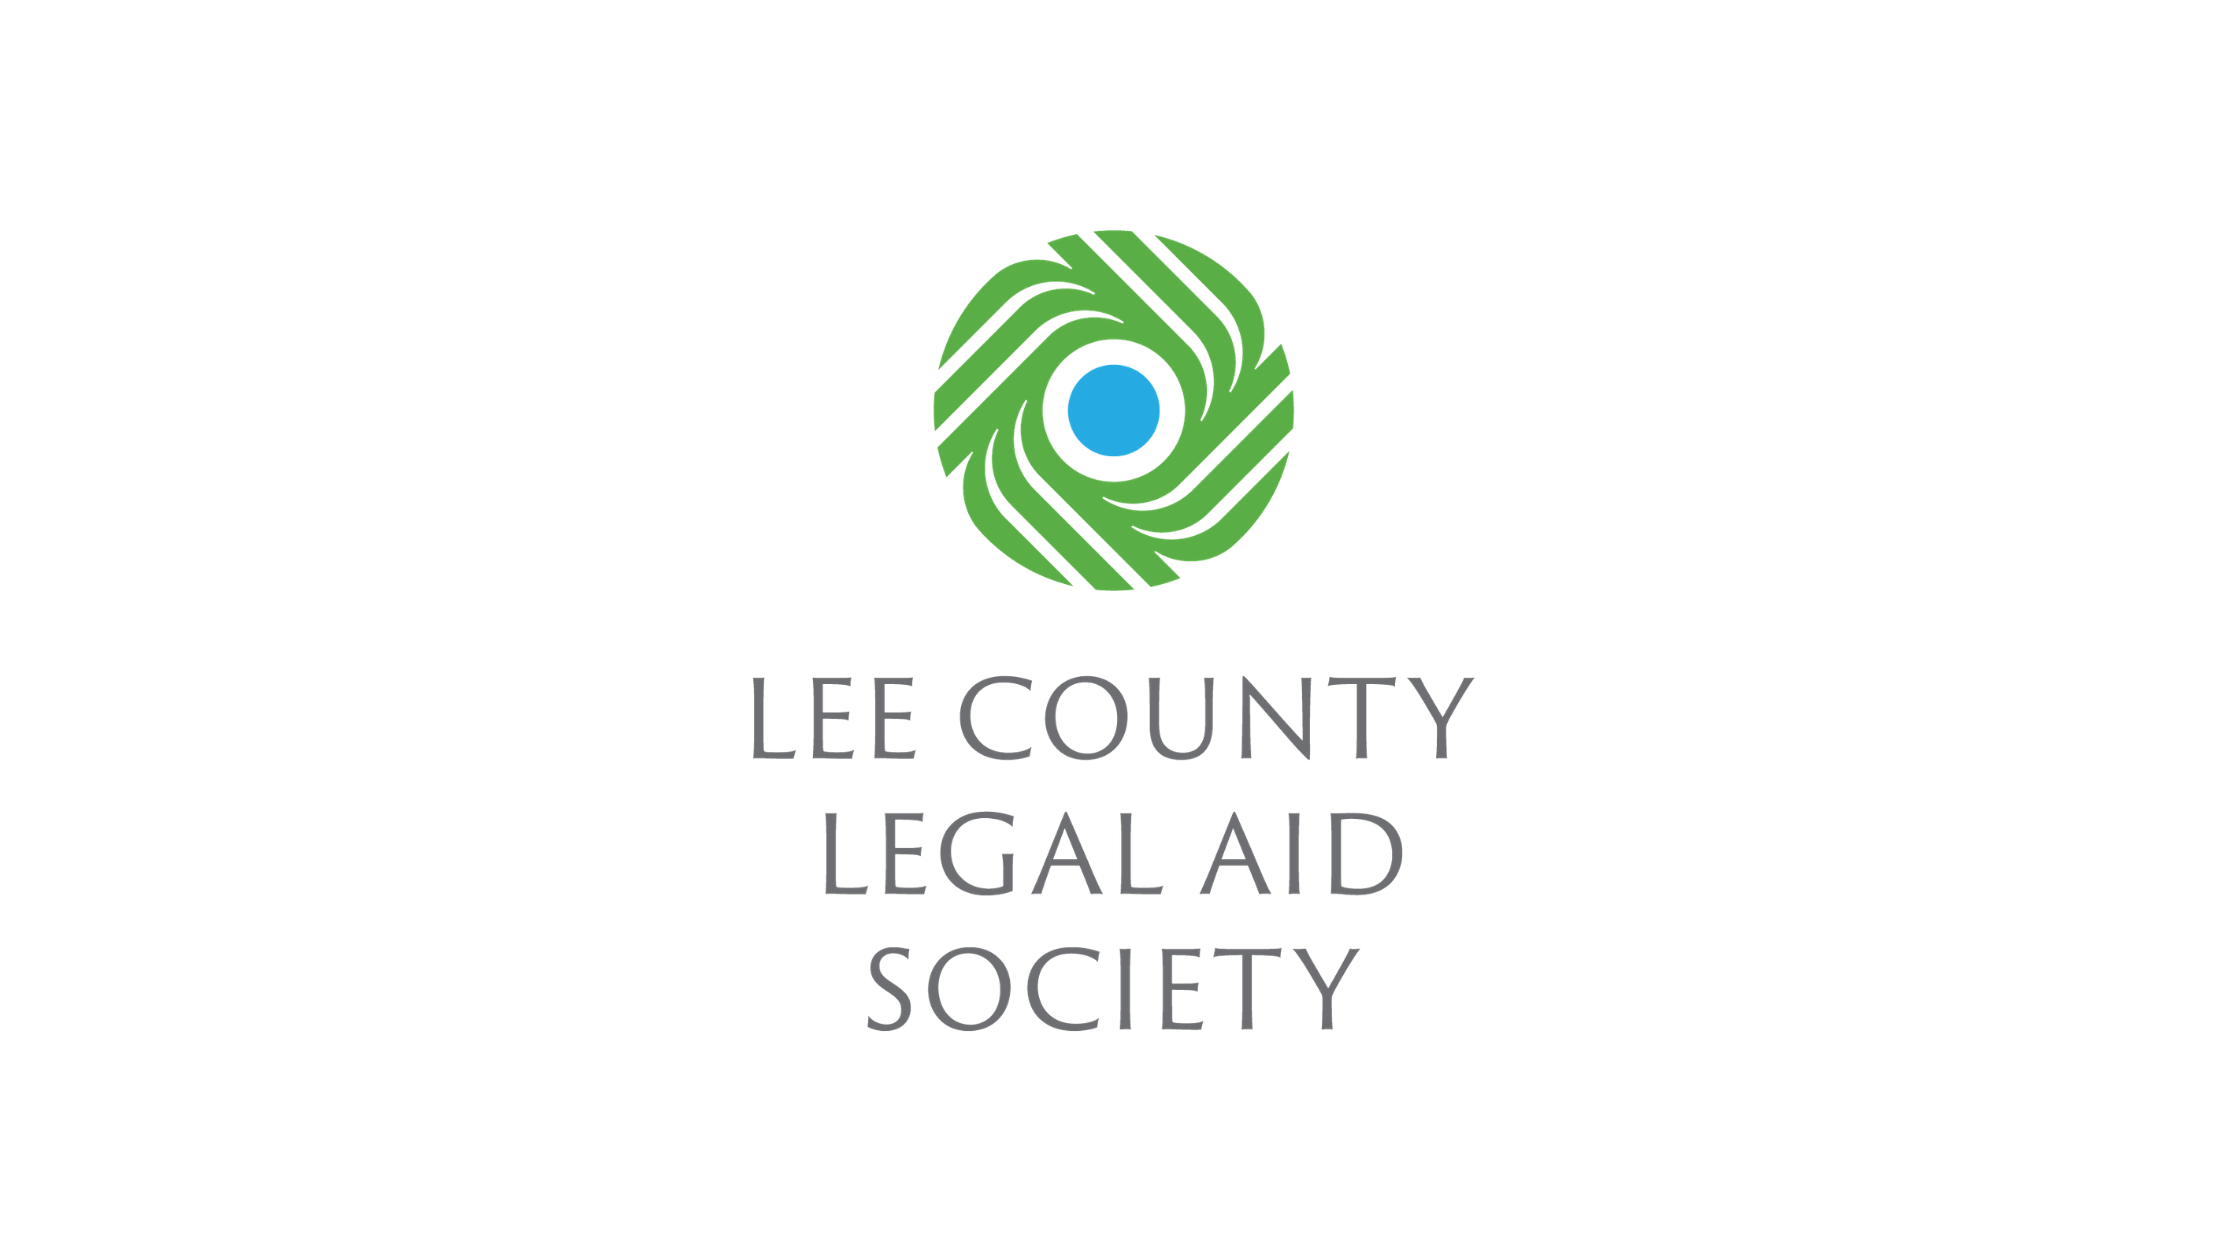 Lee County Legal Aid Society offering free legal services to seniors on December 19